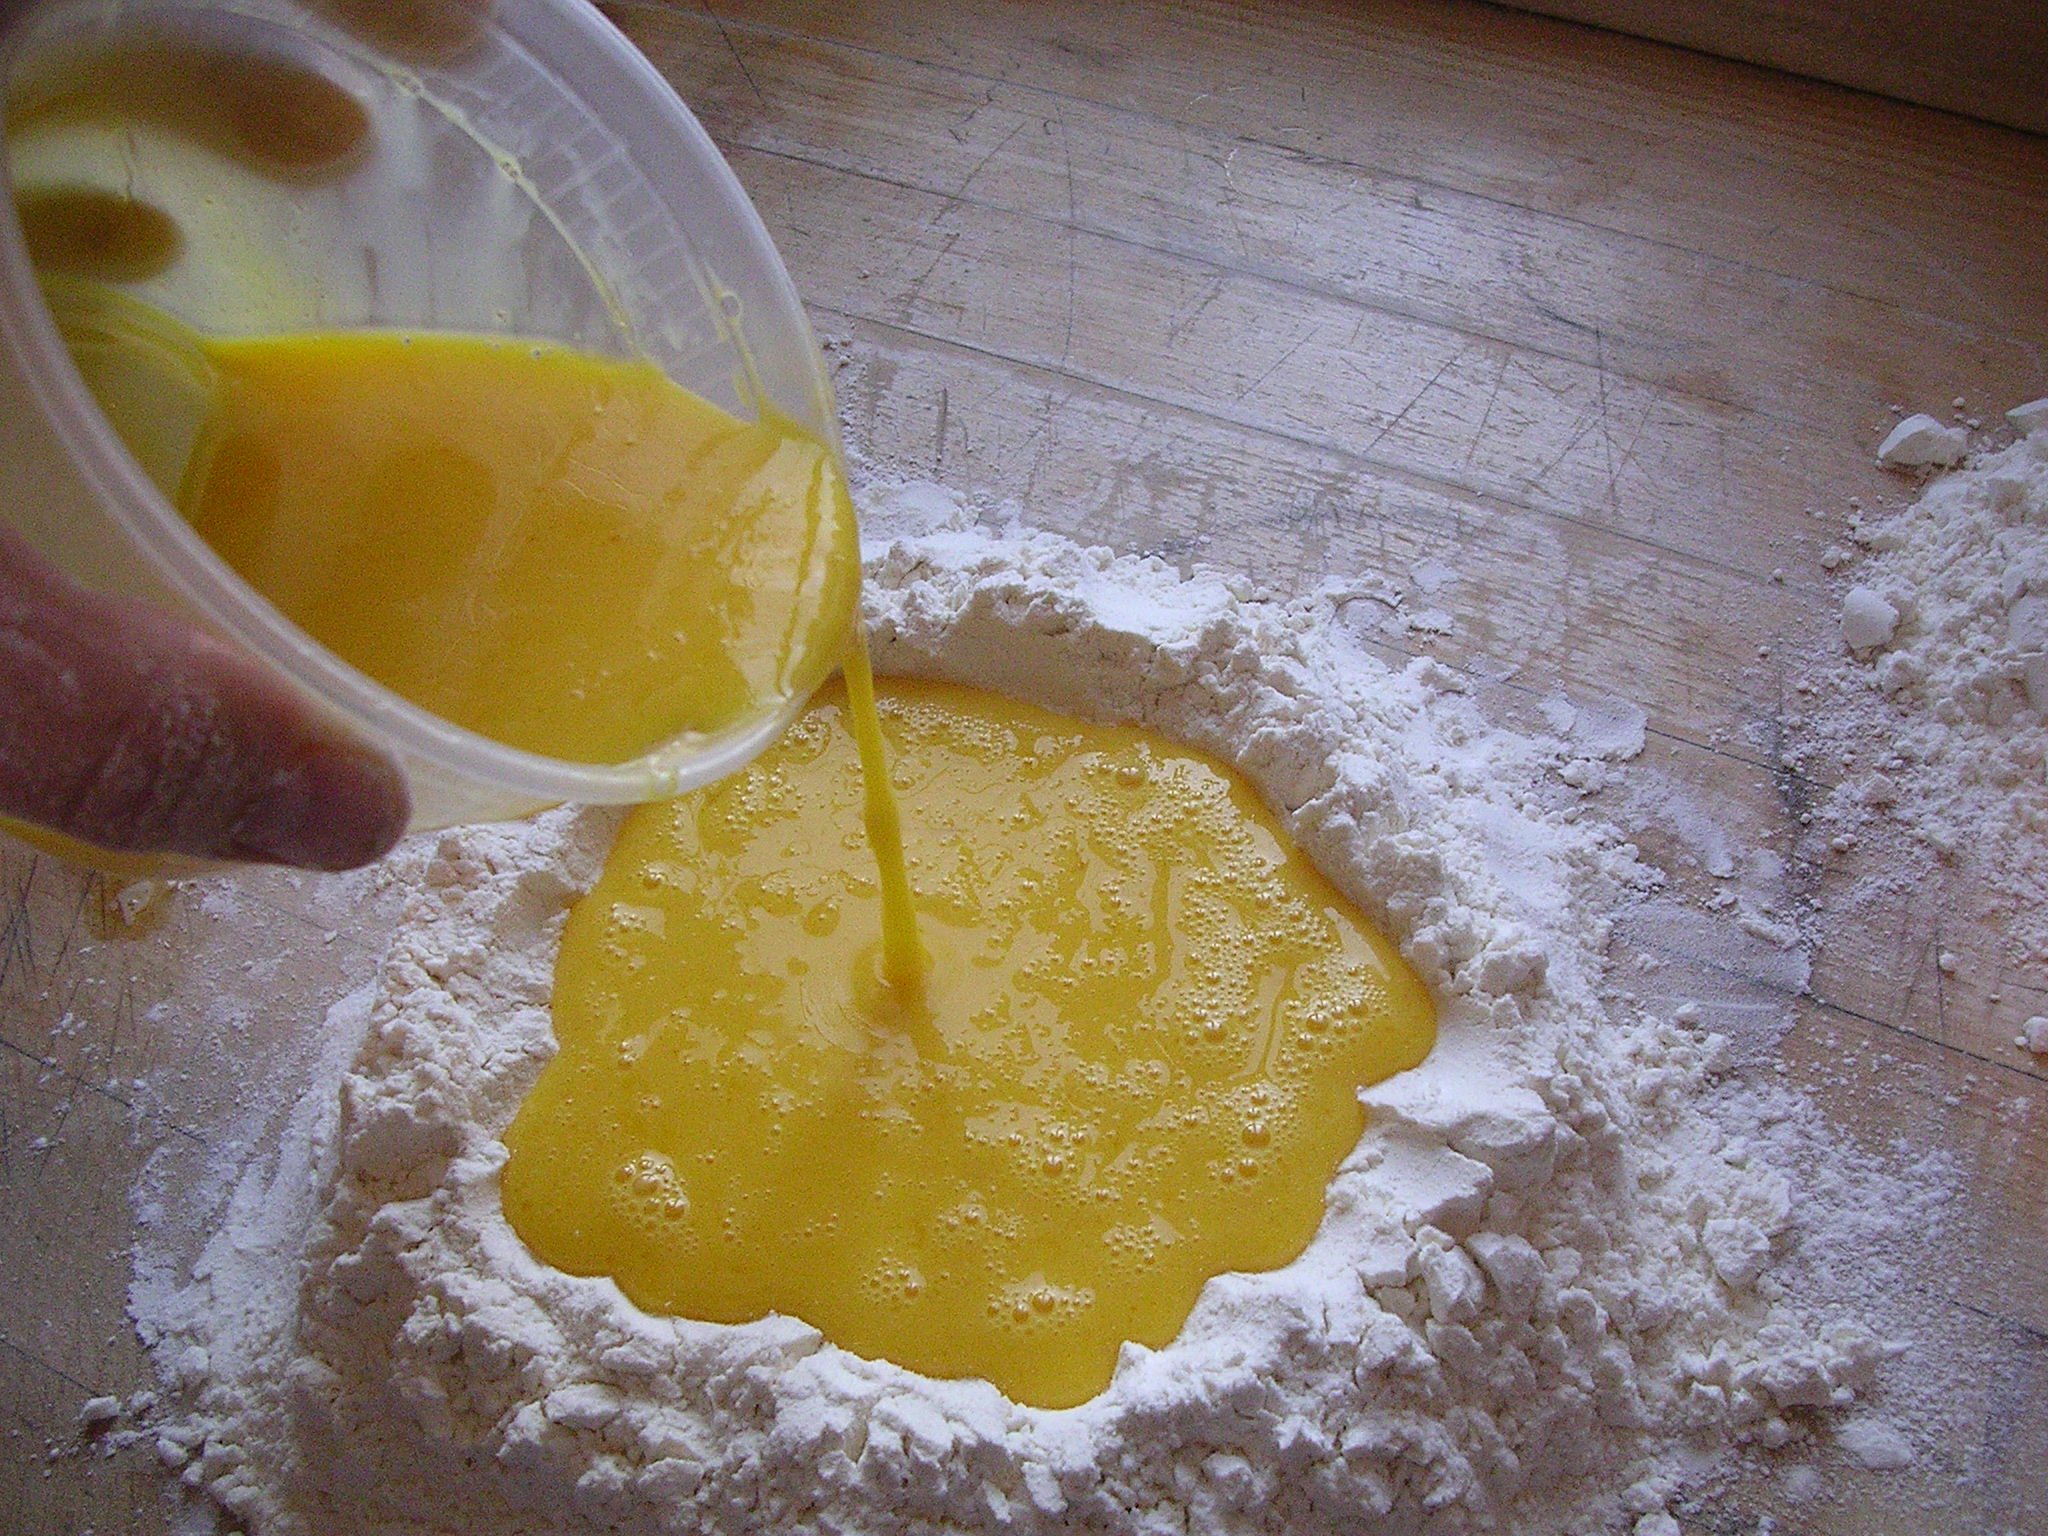 That is a mix of the yolks, eggs, milk, and oil